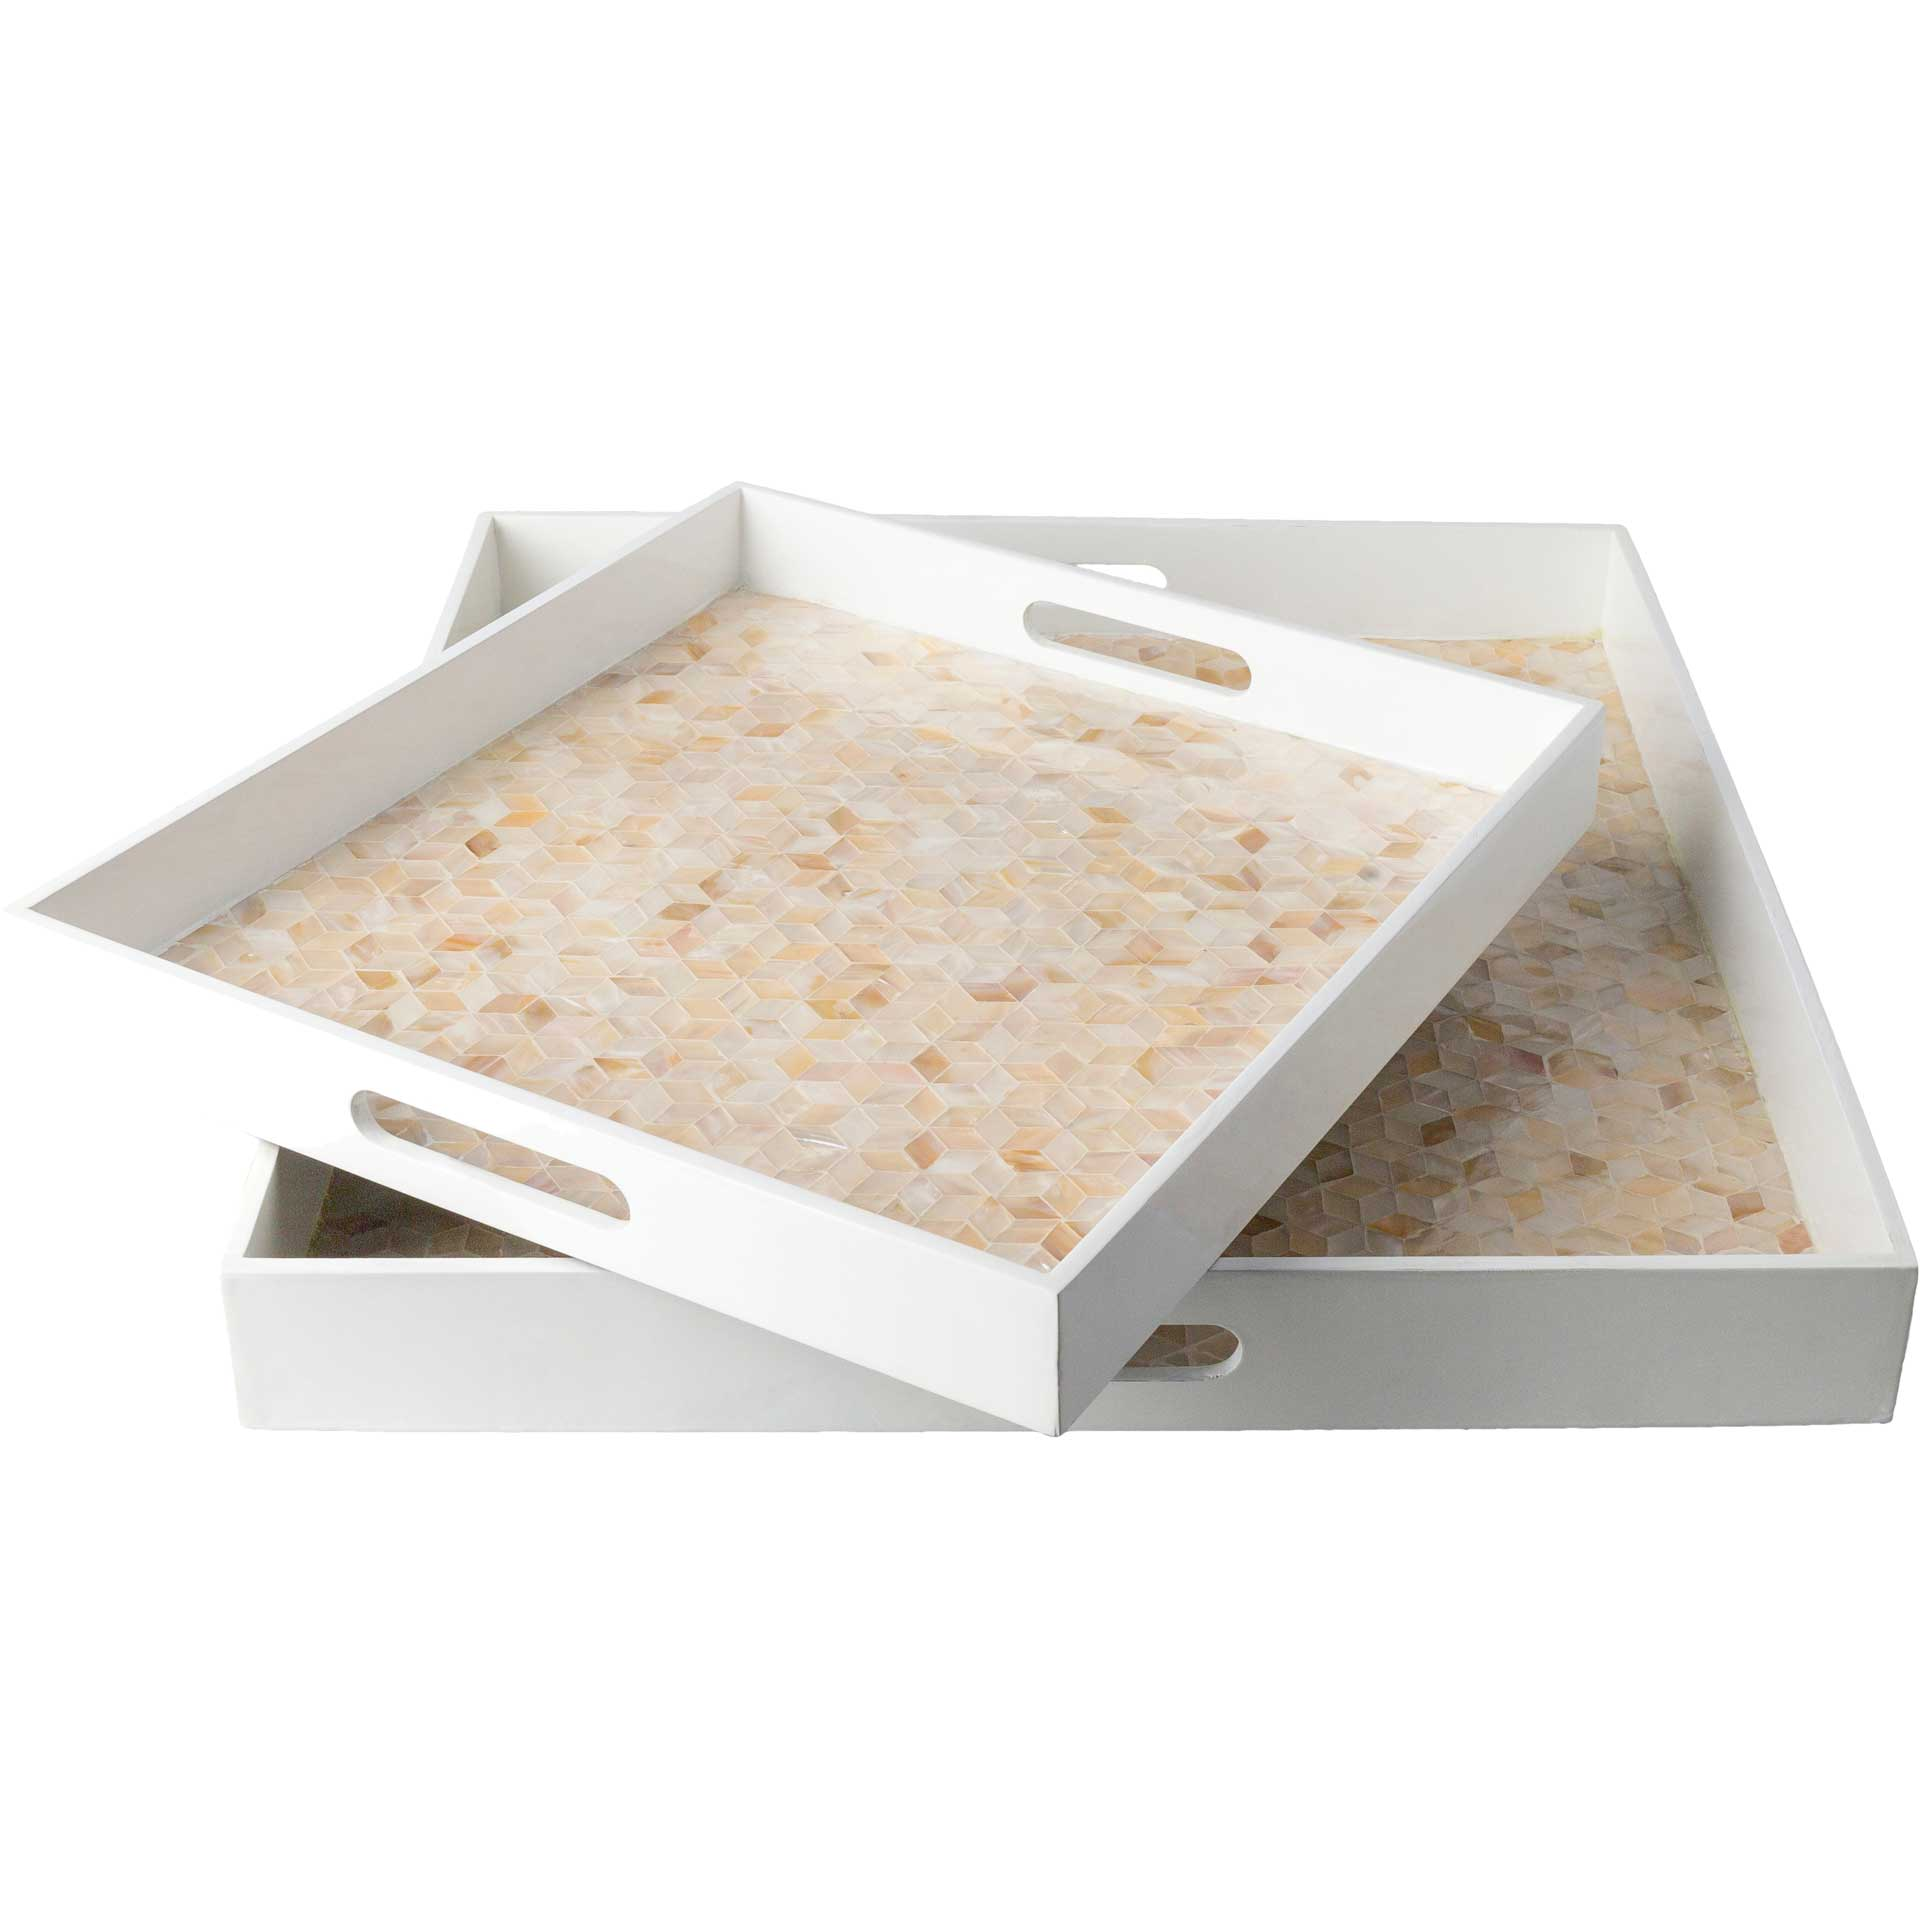 Belle Tray White/Butter/Beige